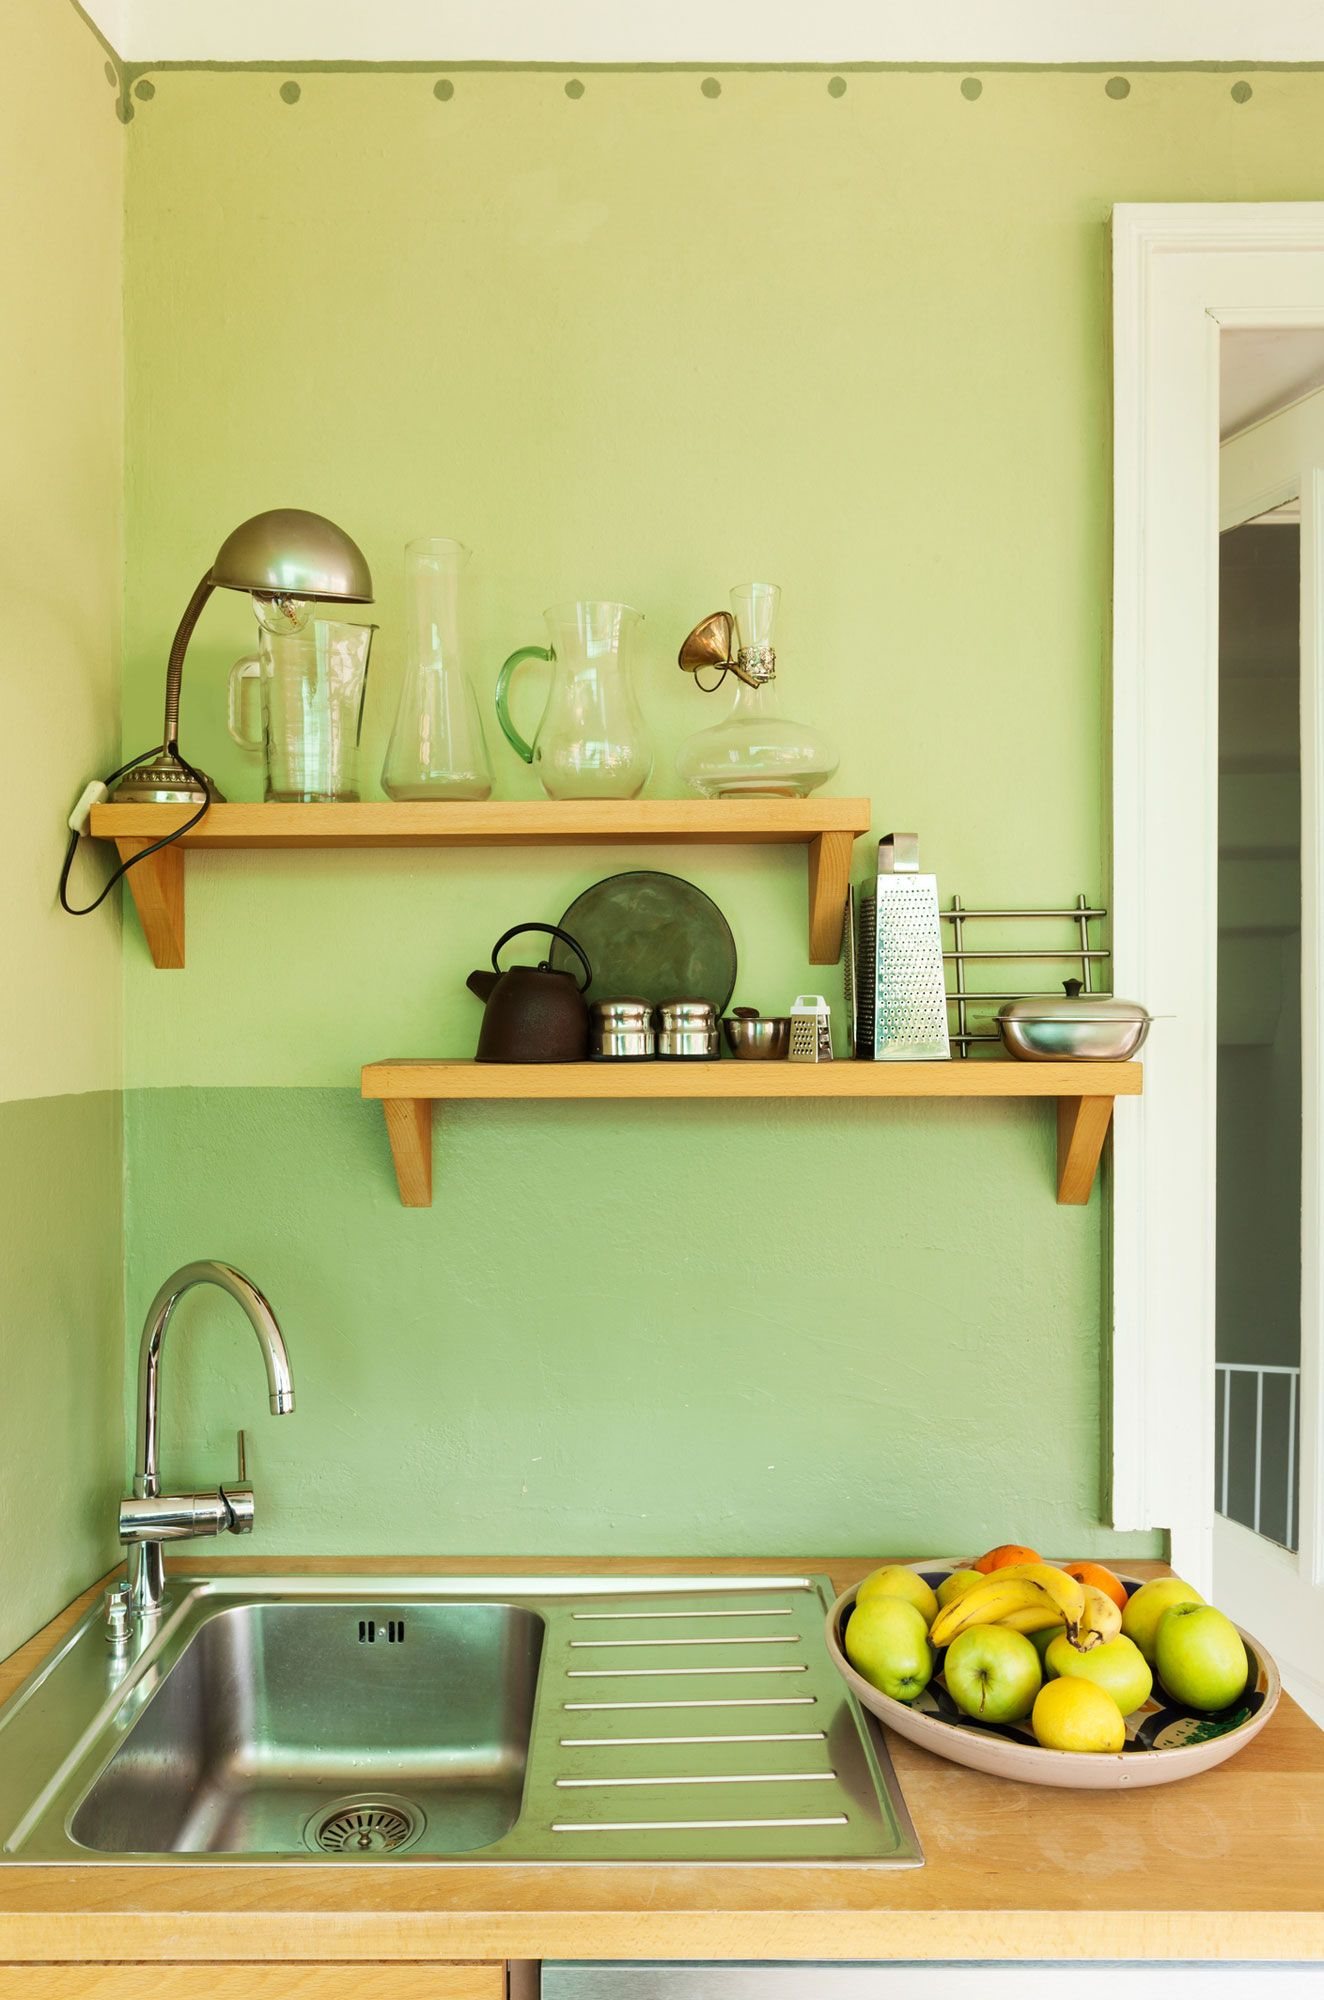 Decorar una cocina en color verde hogarmania for Ideas para decorar paredes de cocina